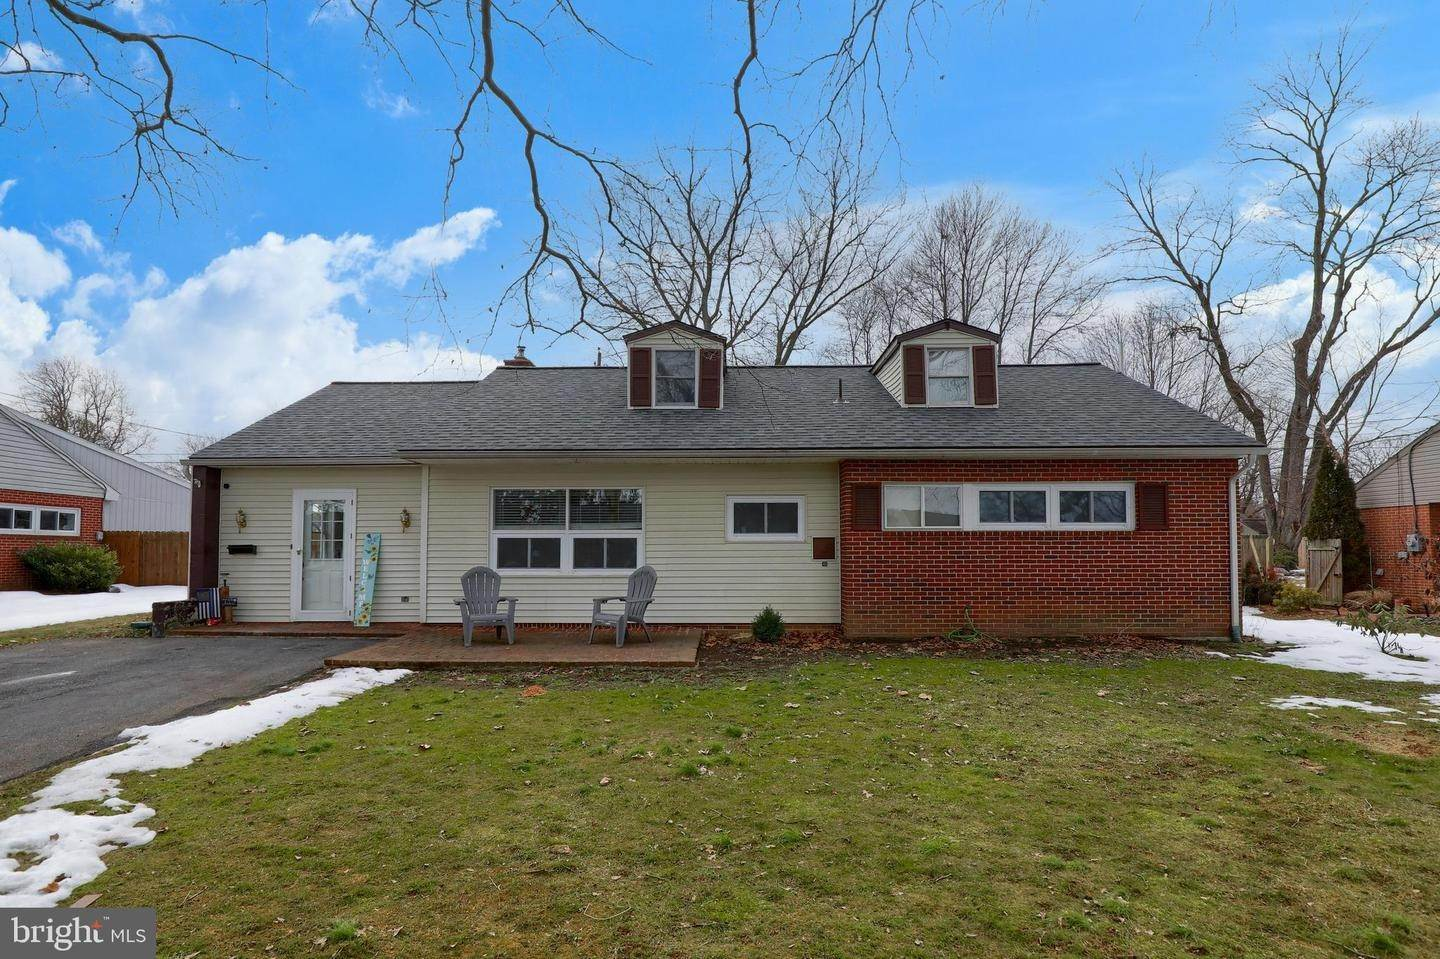 Residential for Sale at 350 BARBARA Street Landisville, Pennsylvania 17538 United States